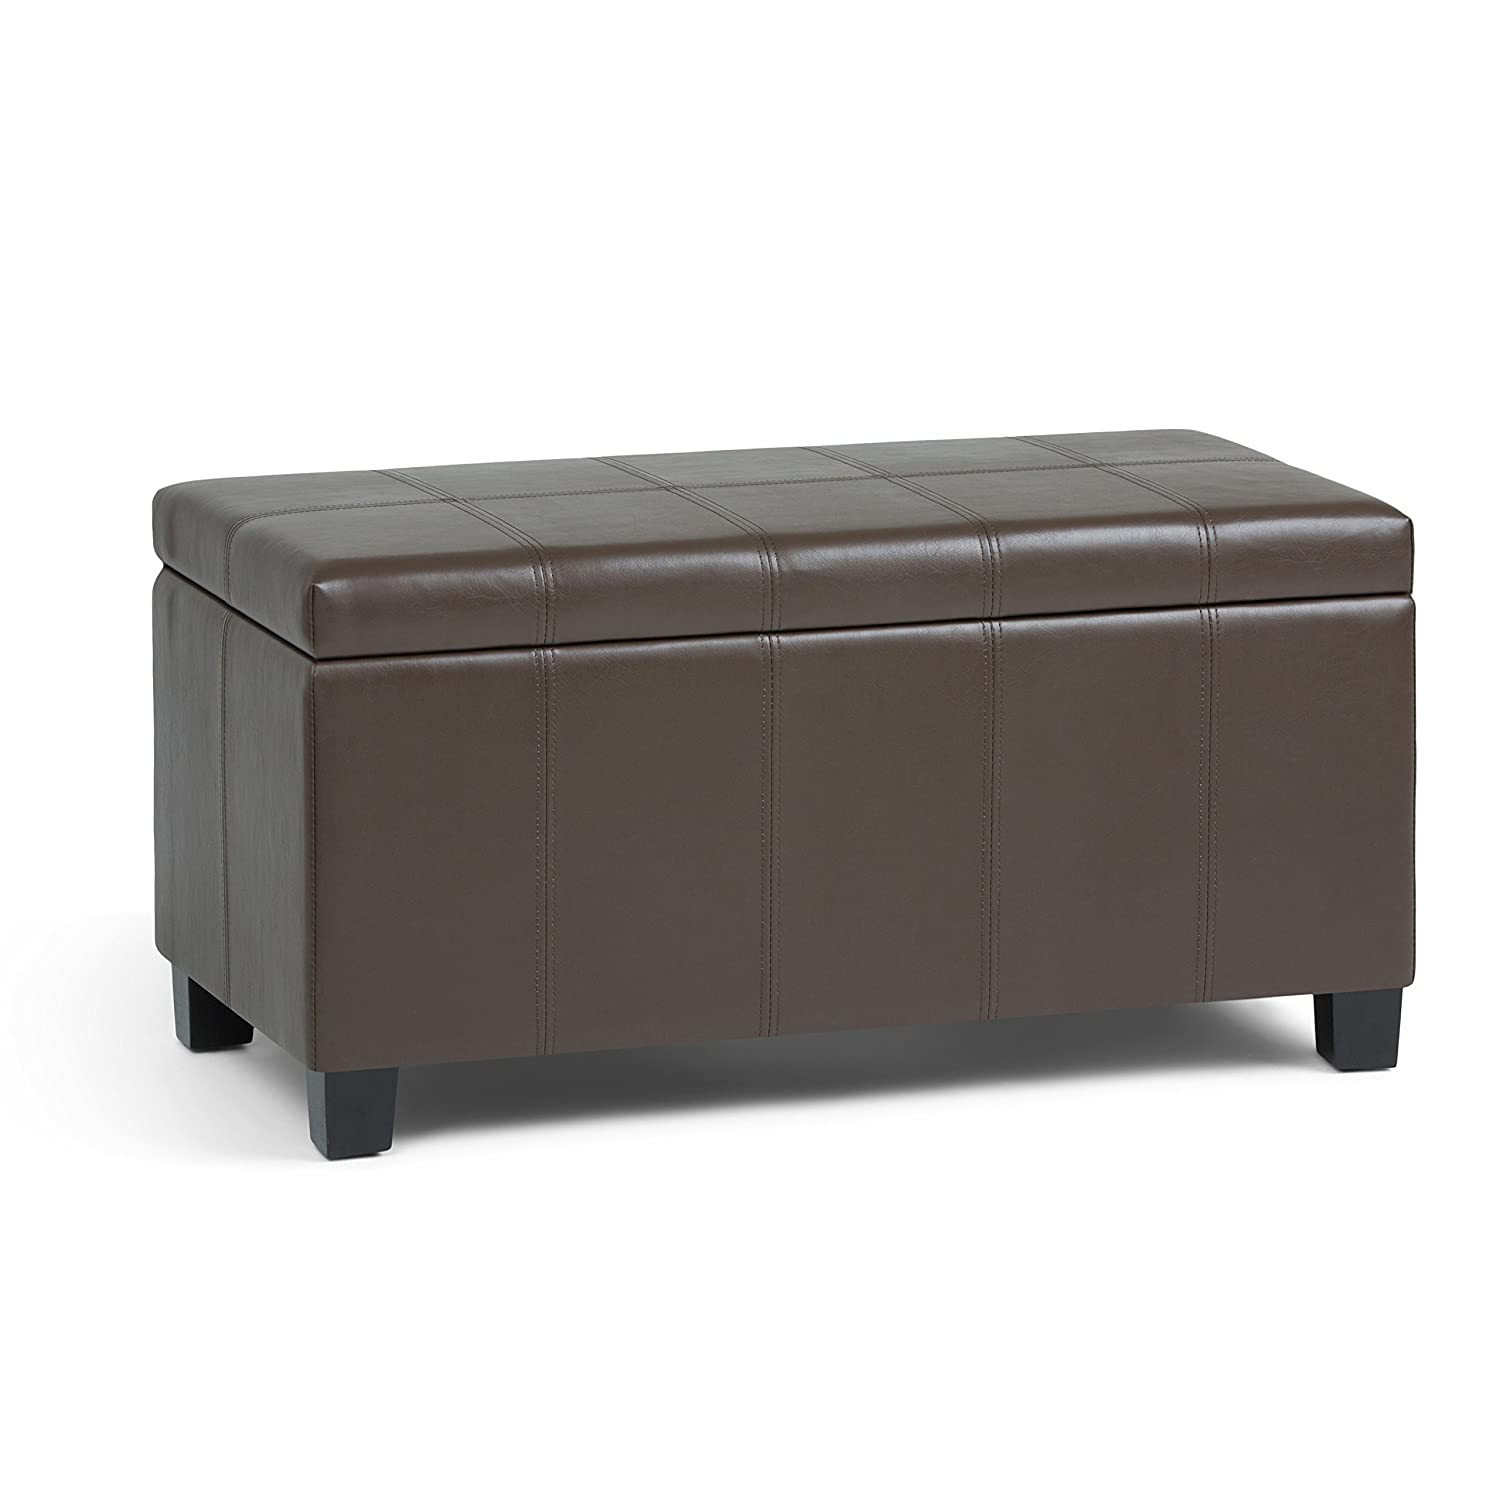 Simpli Home AXCOT-223-CBR Dover 36 inch Wide ContemporaryStorage Ottoman in Chocolate Brown Faux Leather